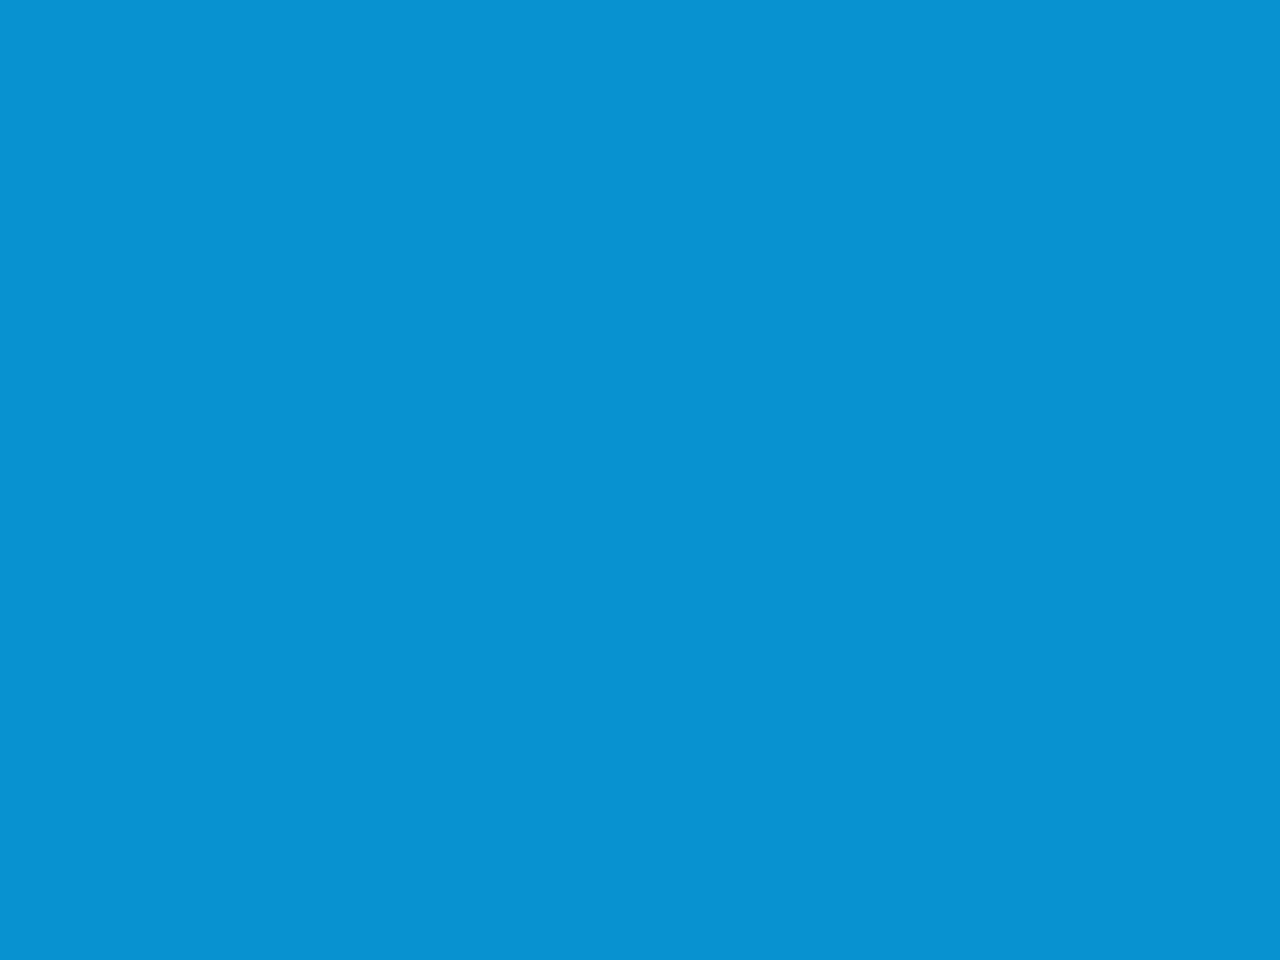 1280x960 Rich Electric Blue Solid Color Background